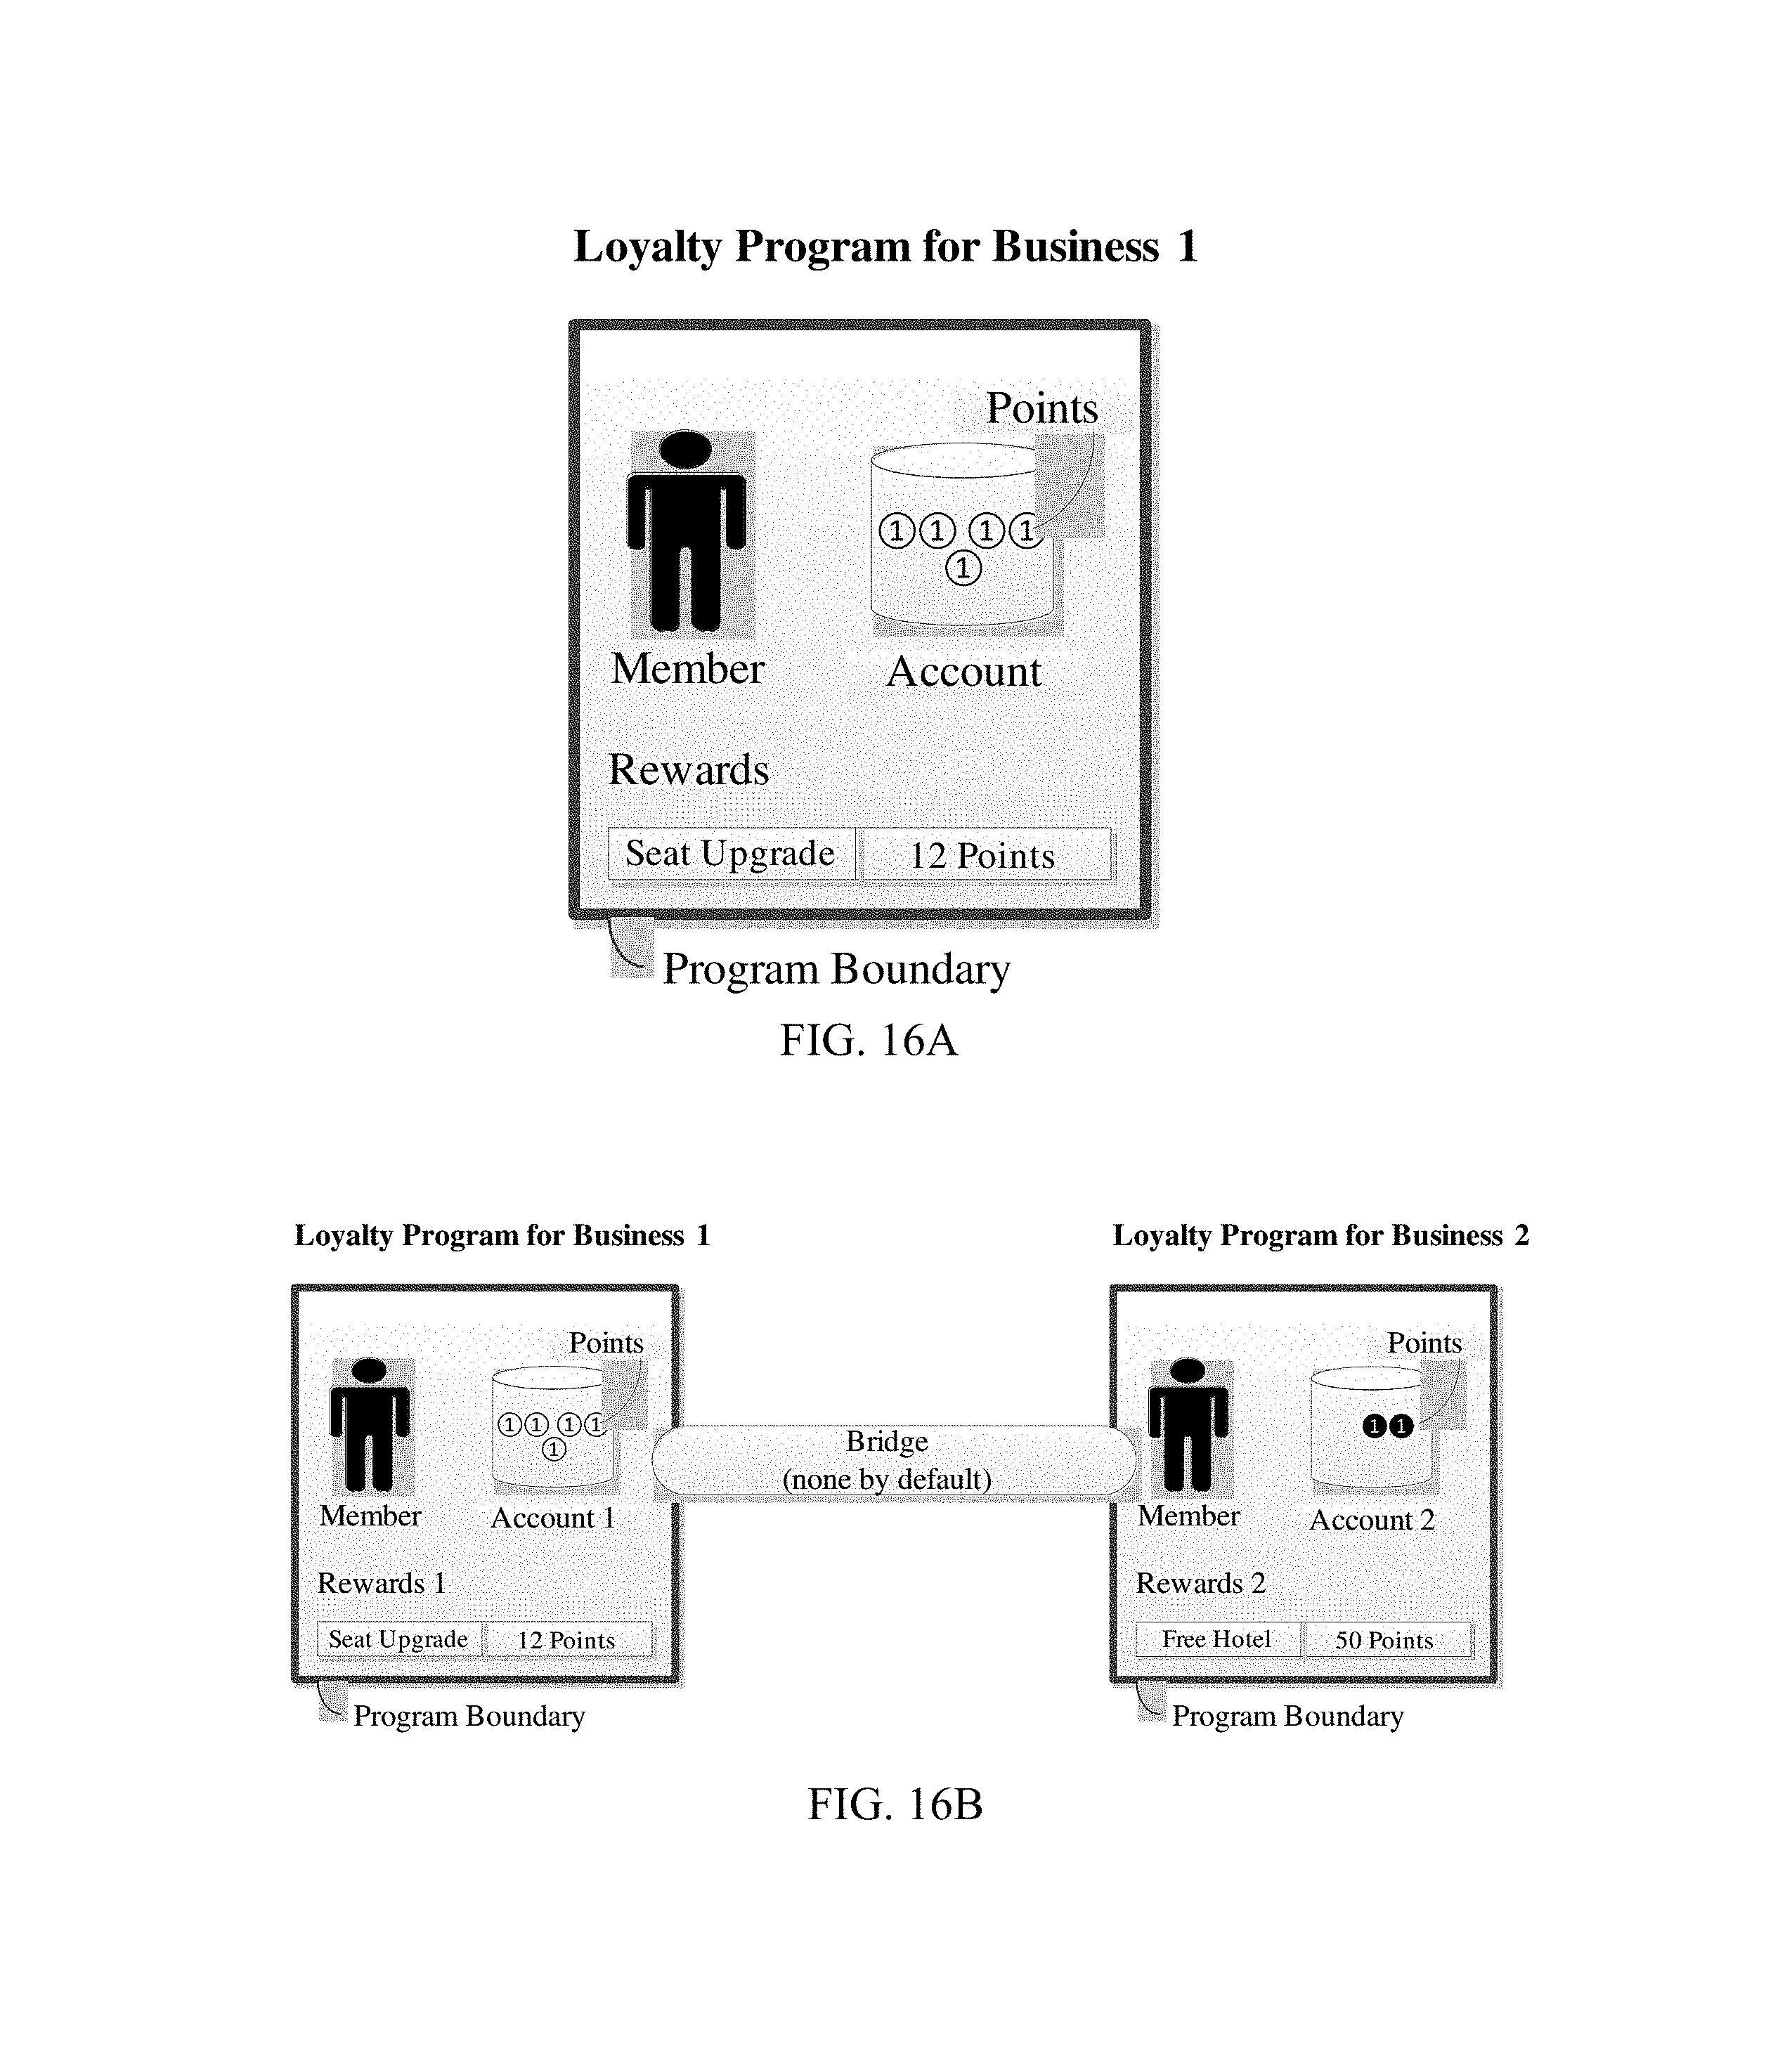 Patent Us 9704174 B1 Free Online Printed Circuit Board Design Tools From Aspen Labs And Litigations